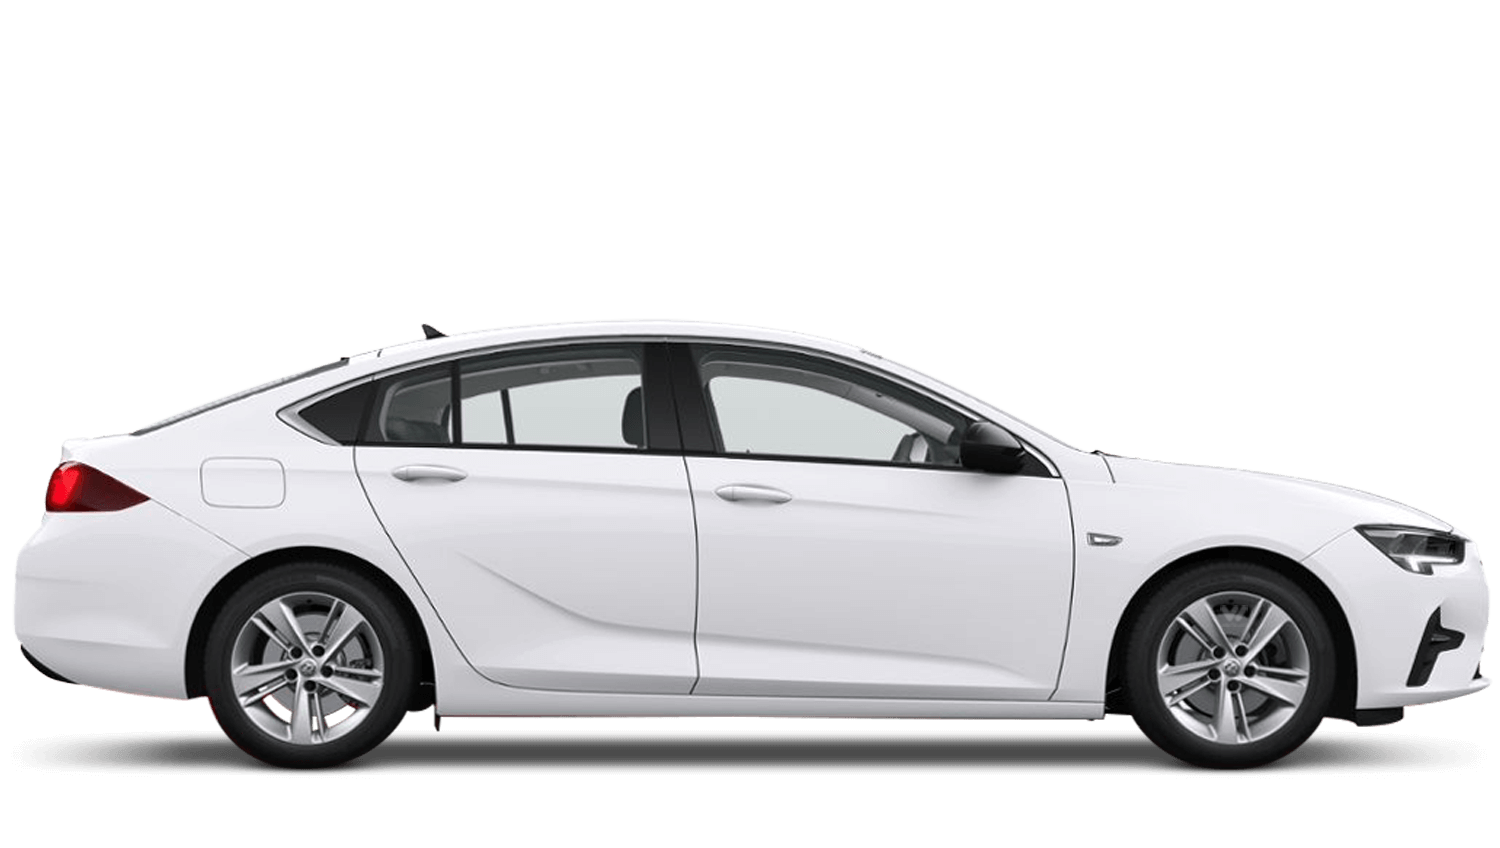 Summit White (Brilliant) New Vauxhall Insignia